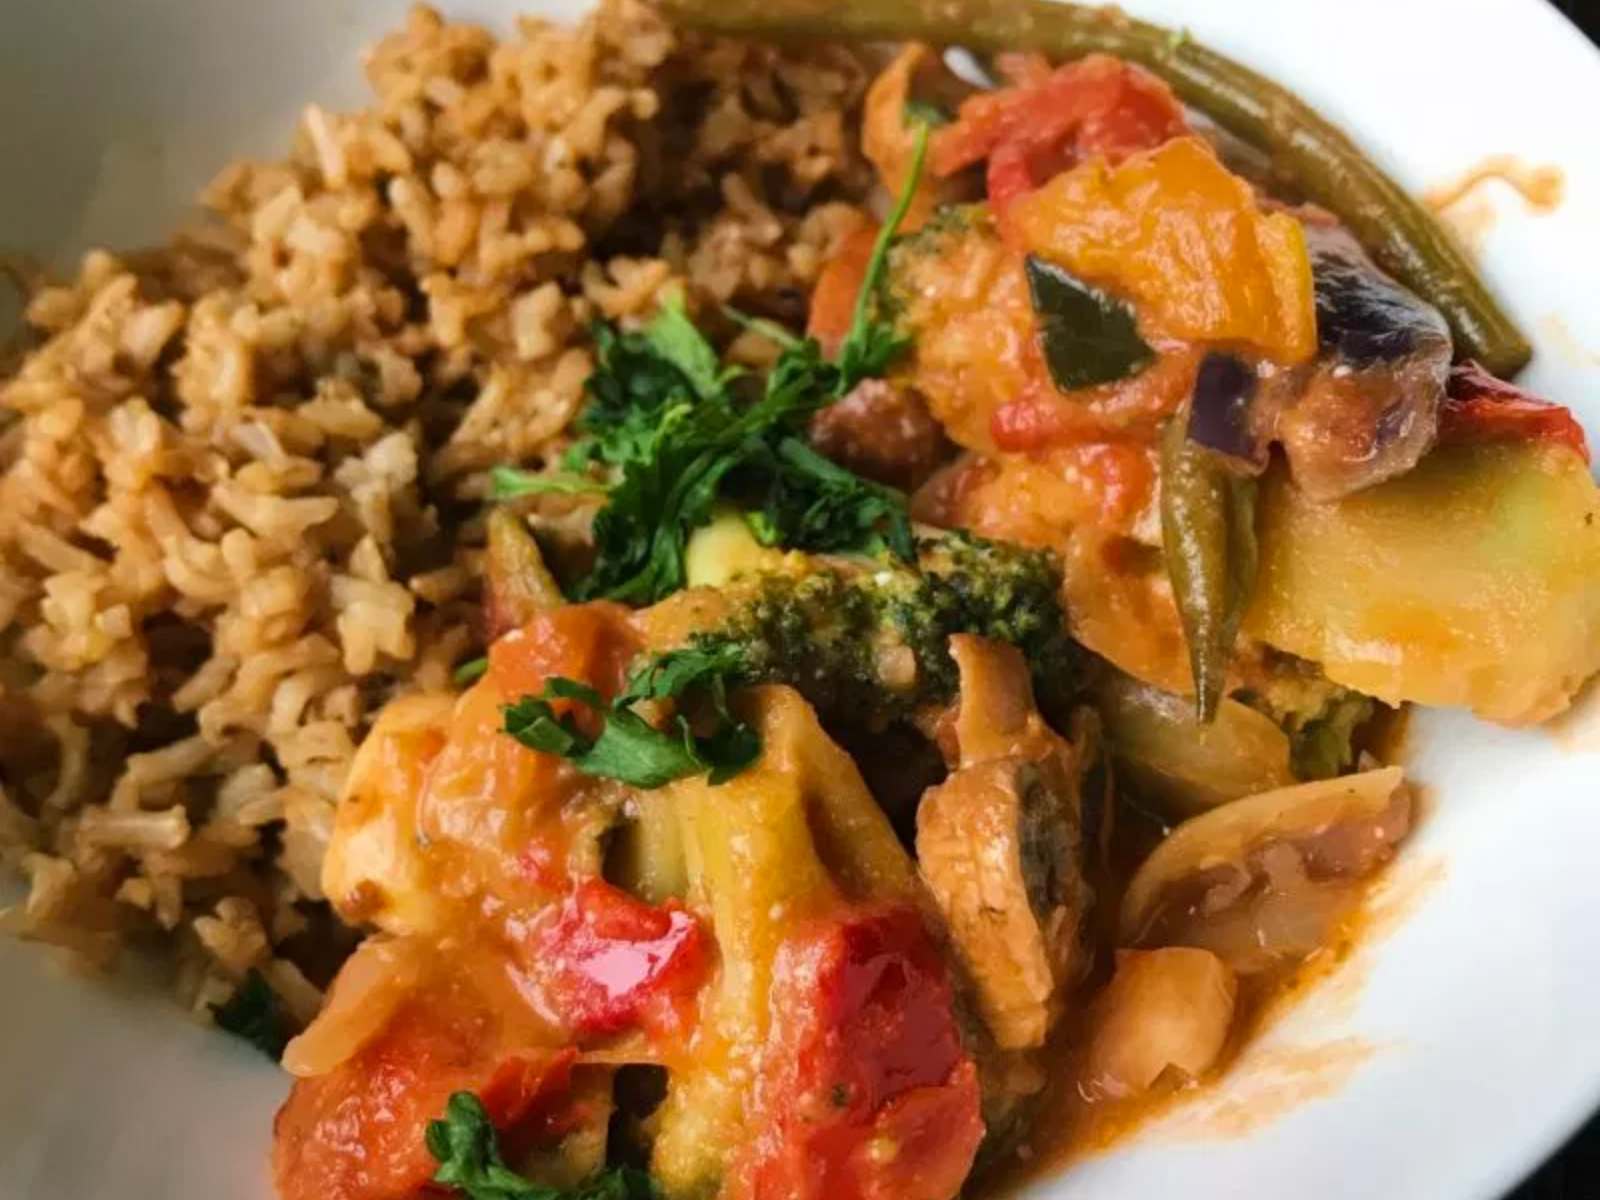 'Chicken' Thai Red Curry With Fried Rice